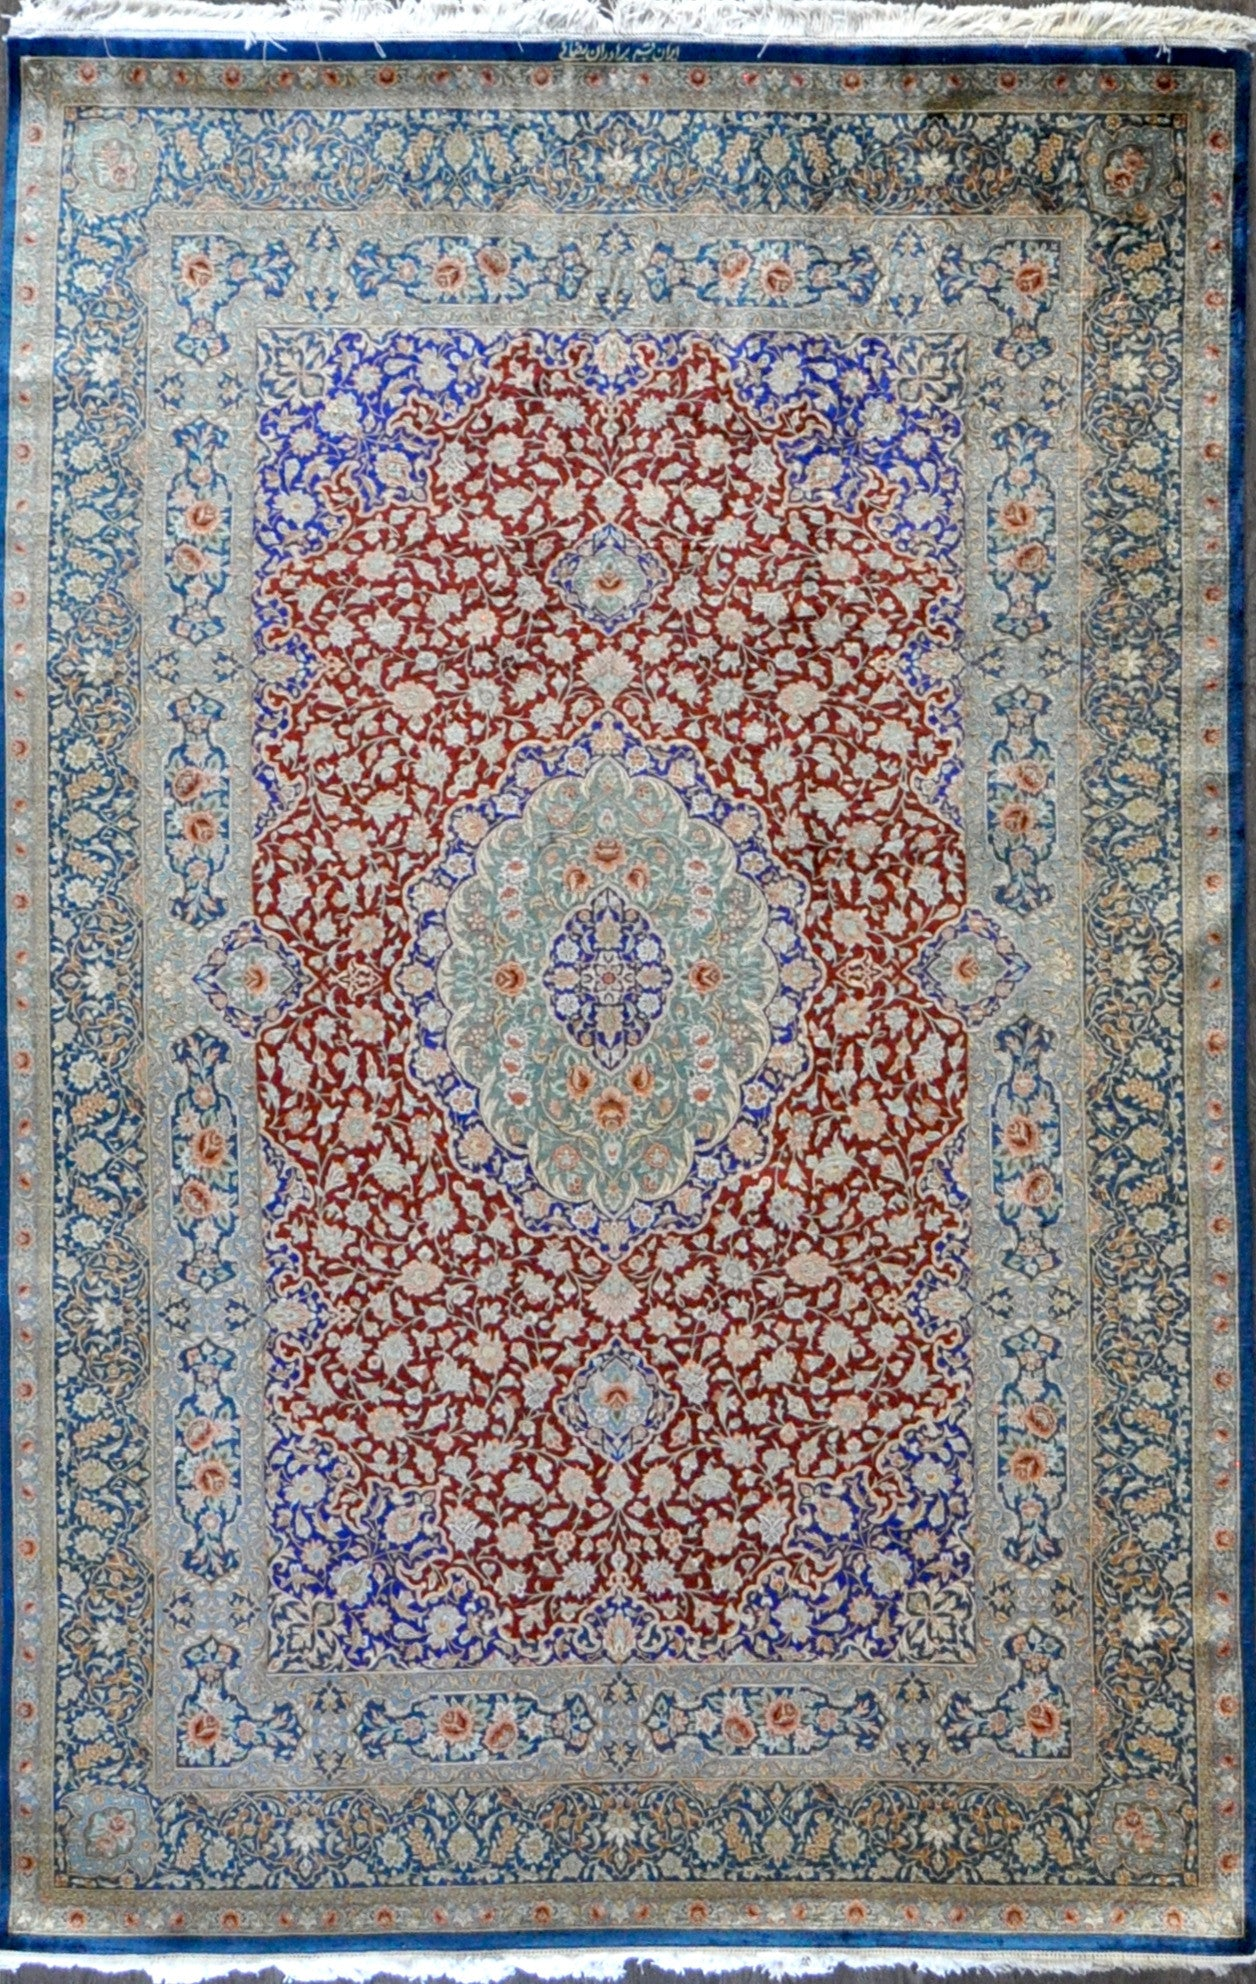 6.6x9.10 persian qum all silk(SIGNED REZAI)  #82372